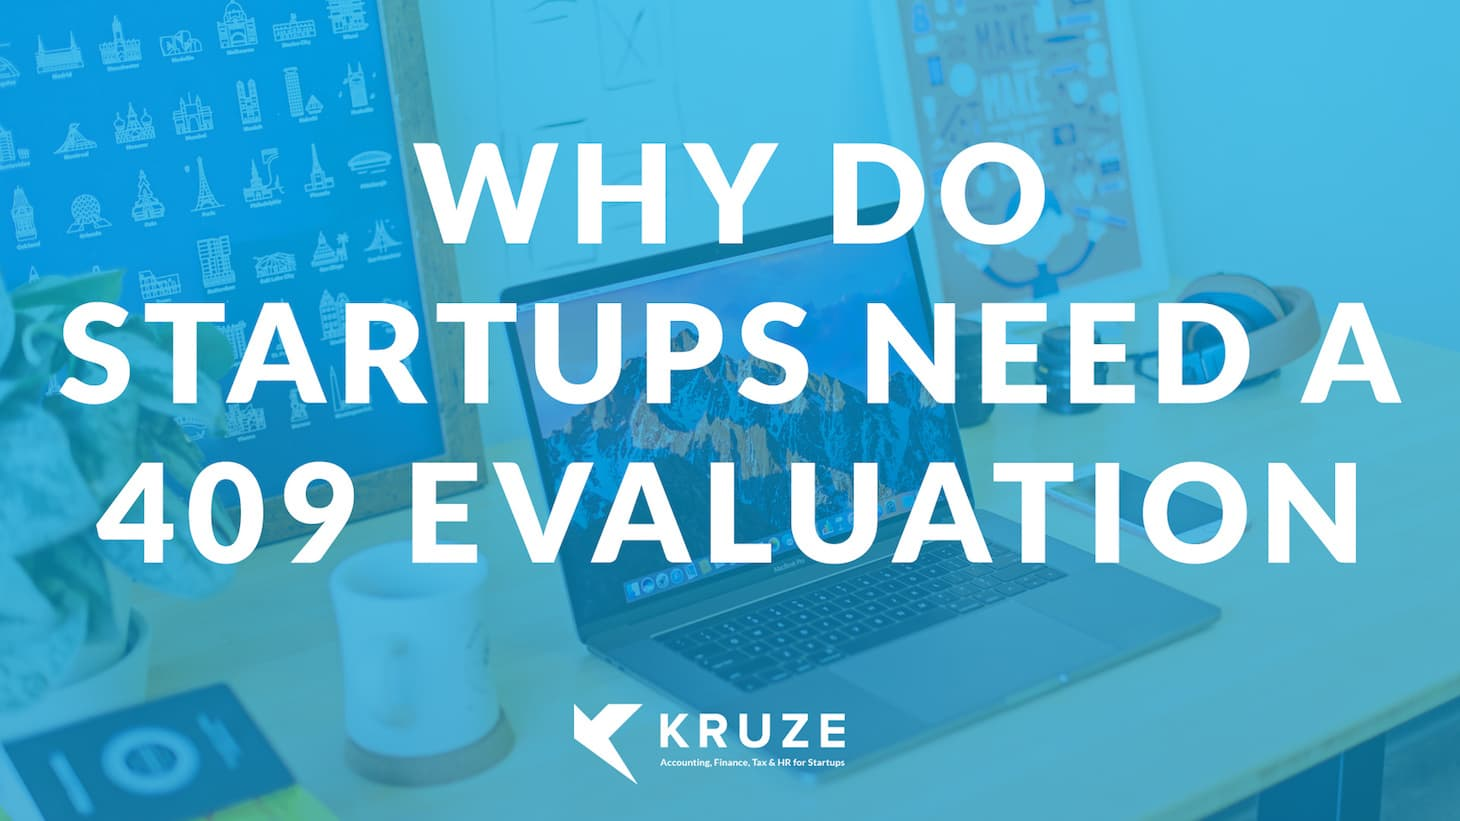 Why Do Startups Need a 409 Evaluation